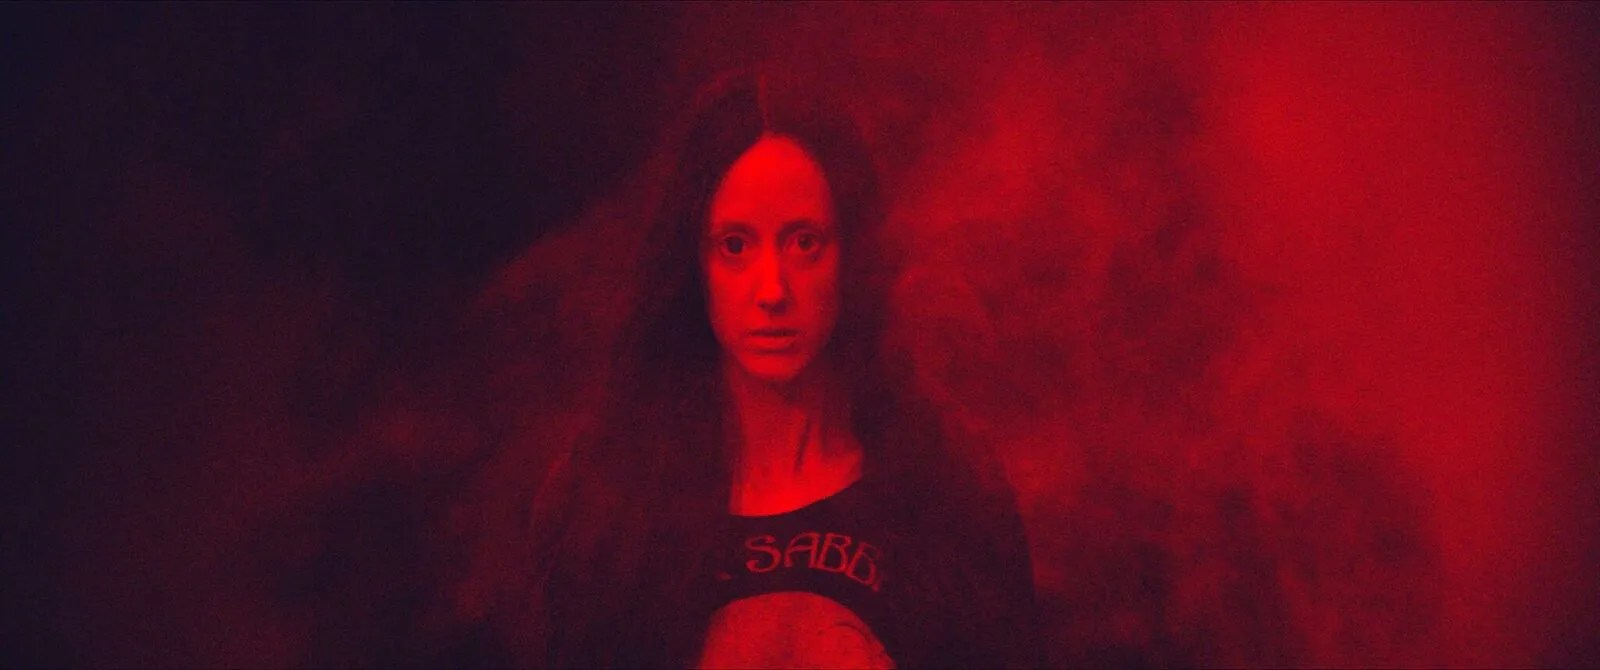 Mandy Review: The Beautiful Insanity of Love and Loss | Collider